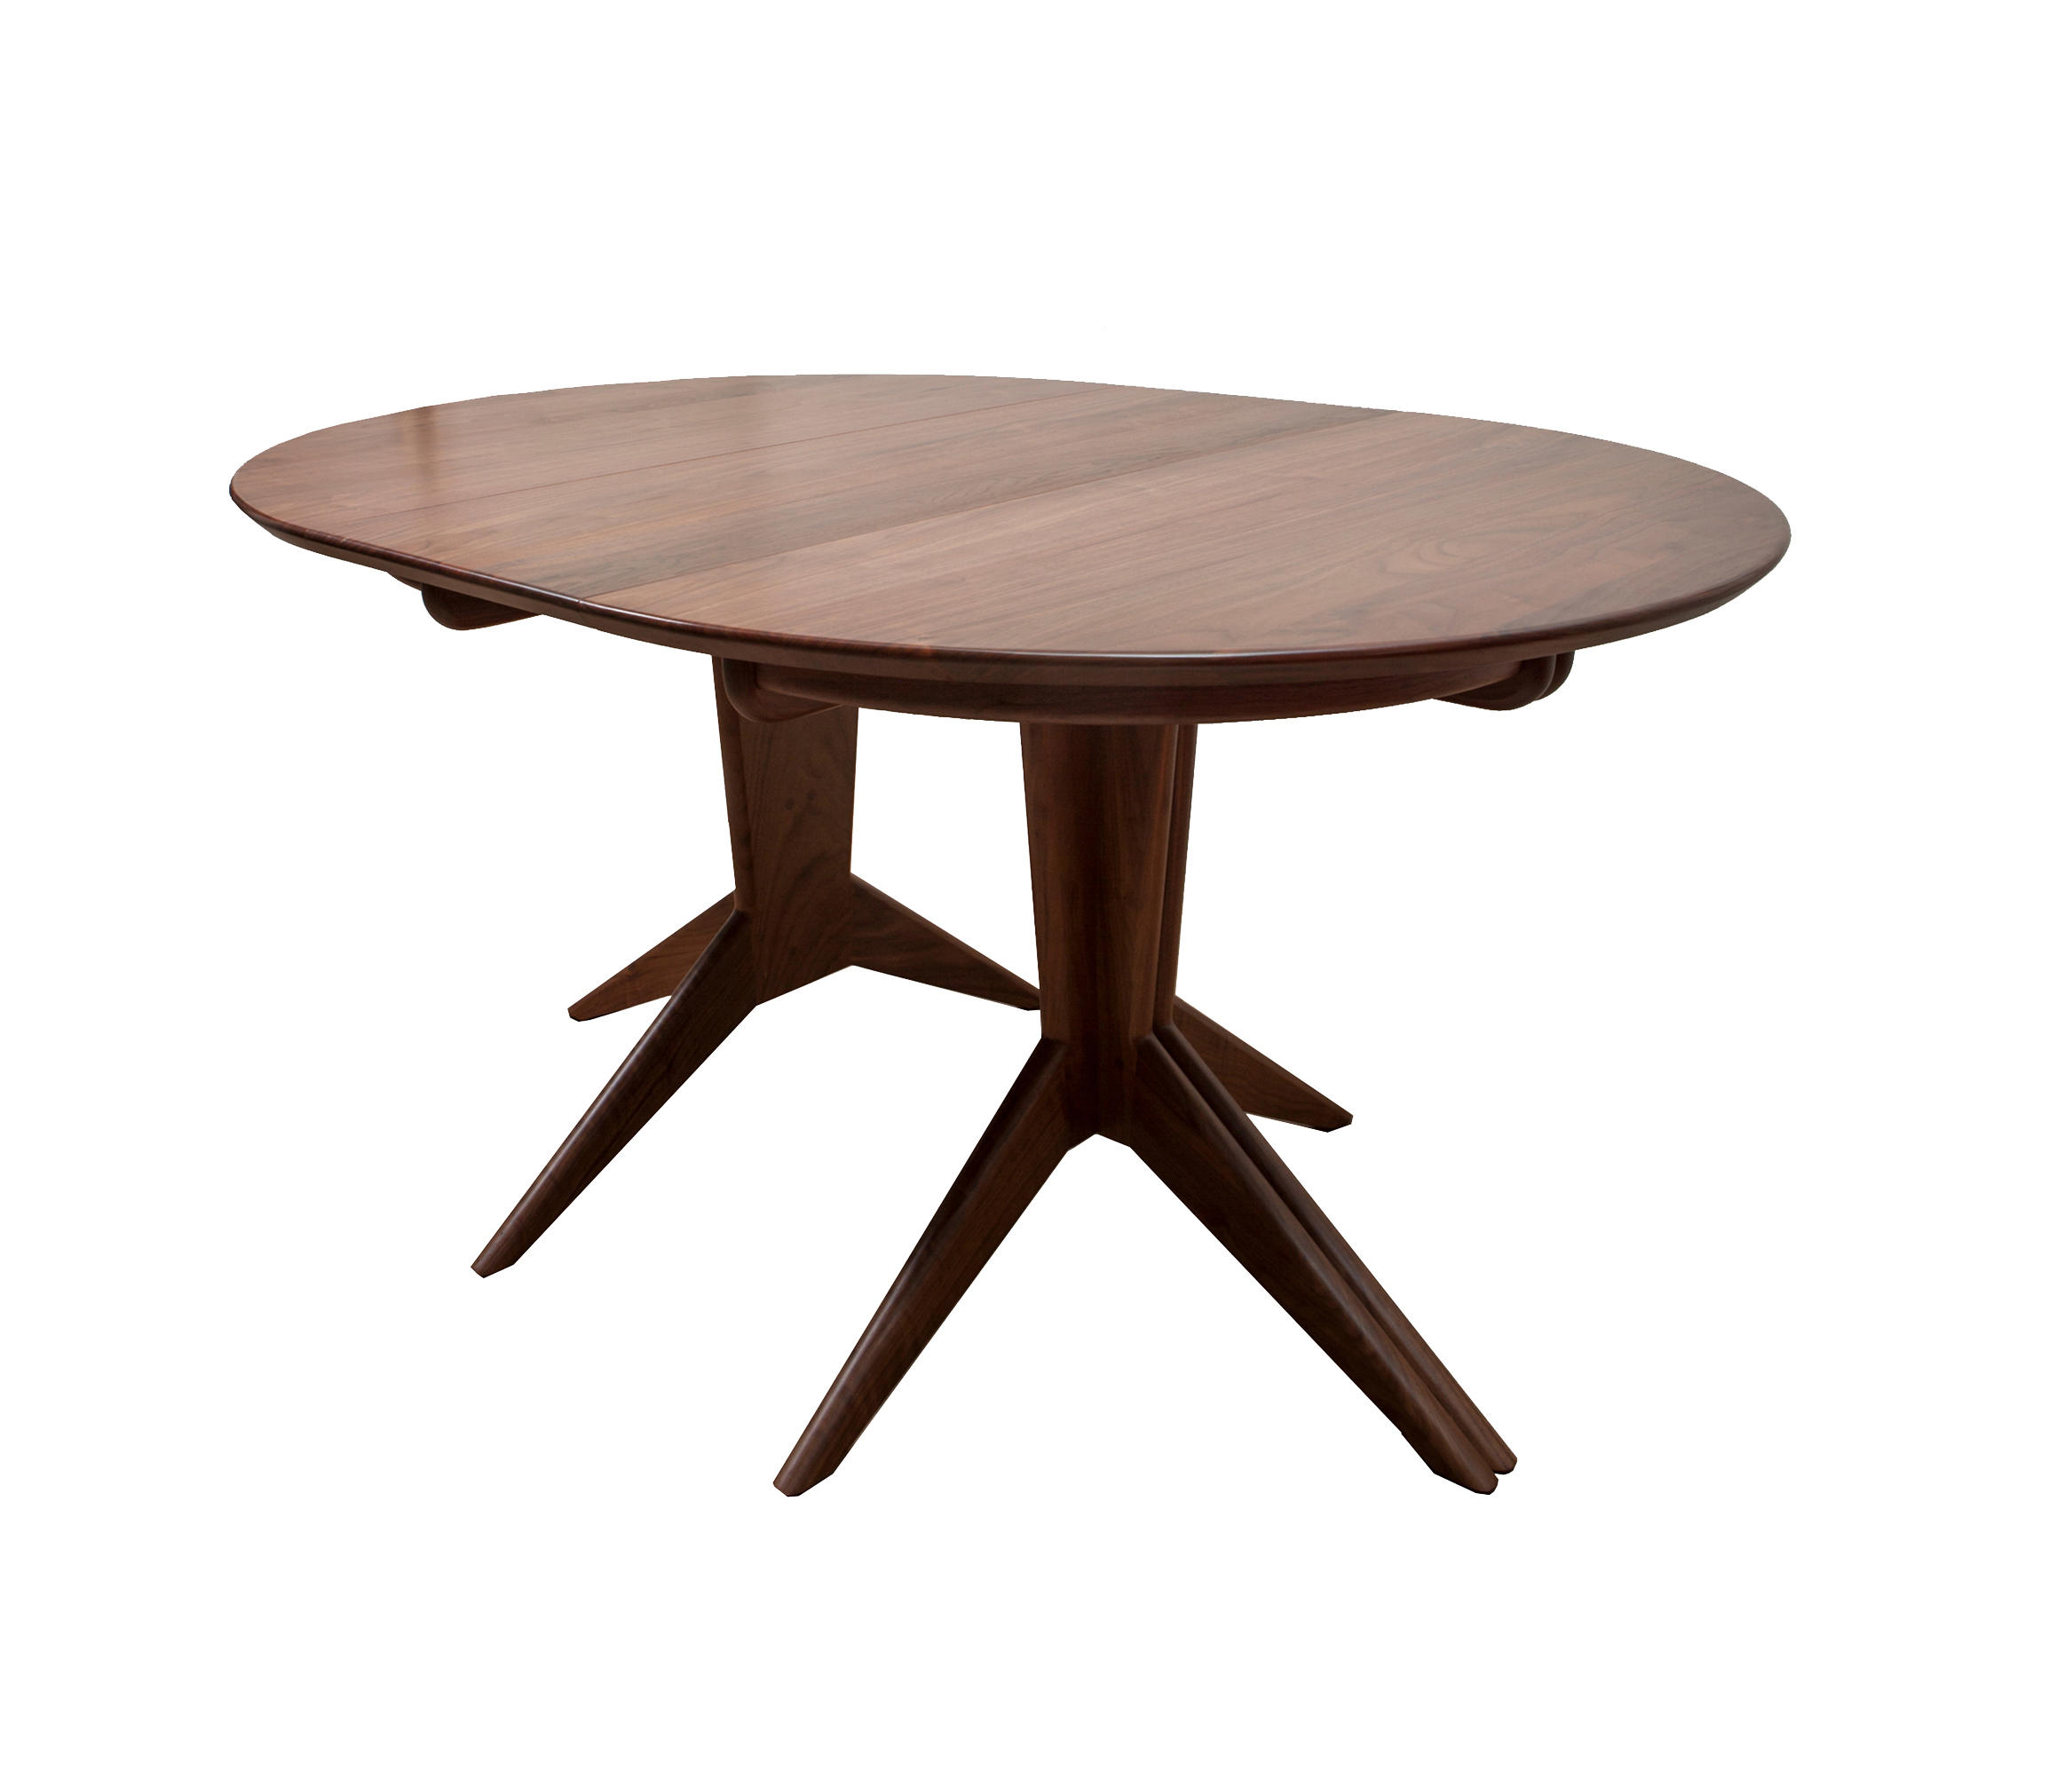 Pedestal extension dining table dining tables from for Pedestal dining table